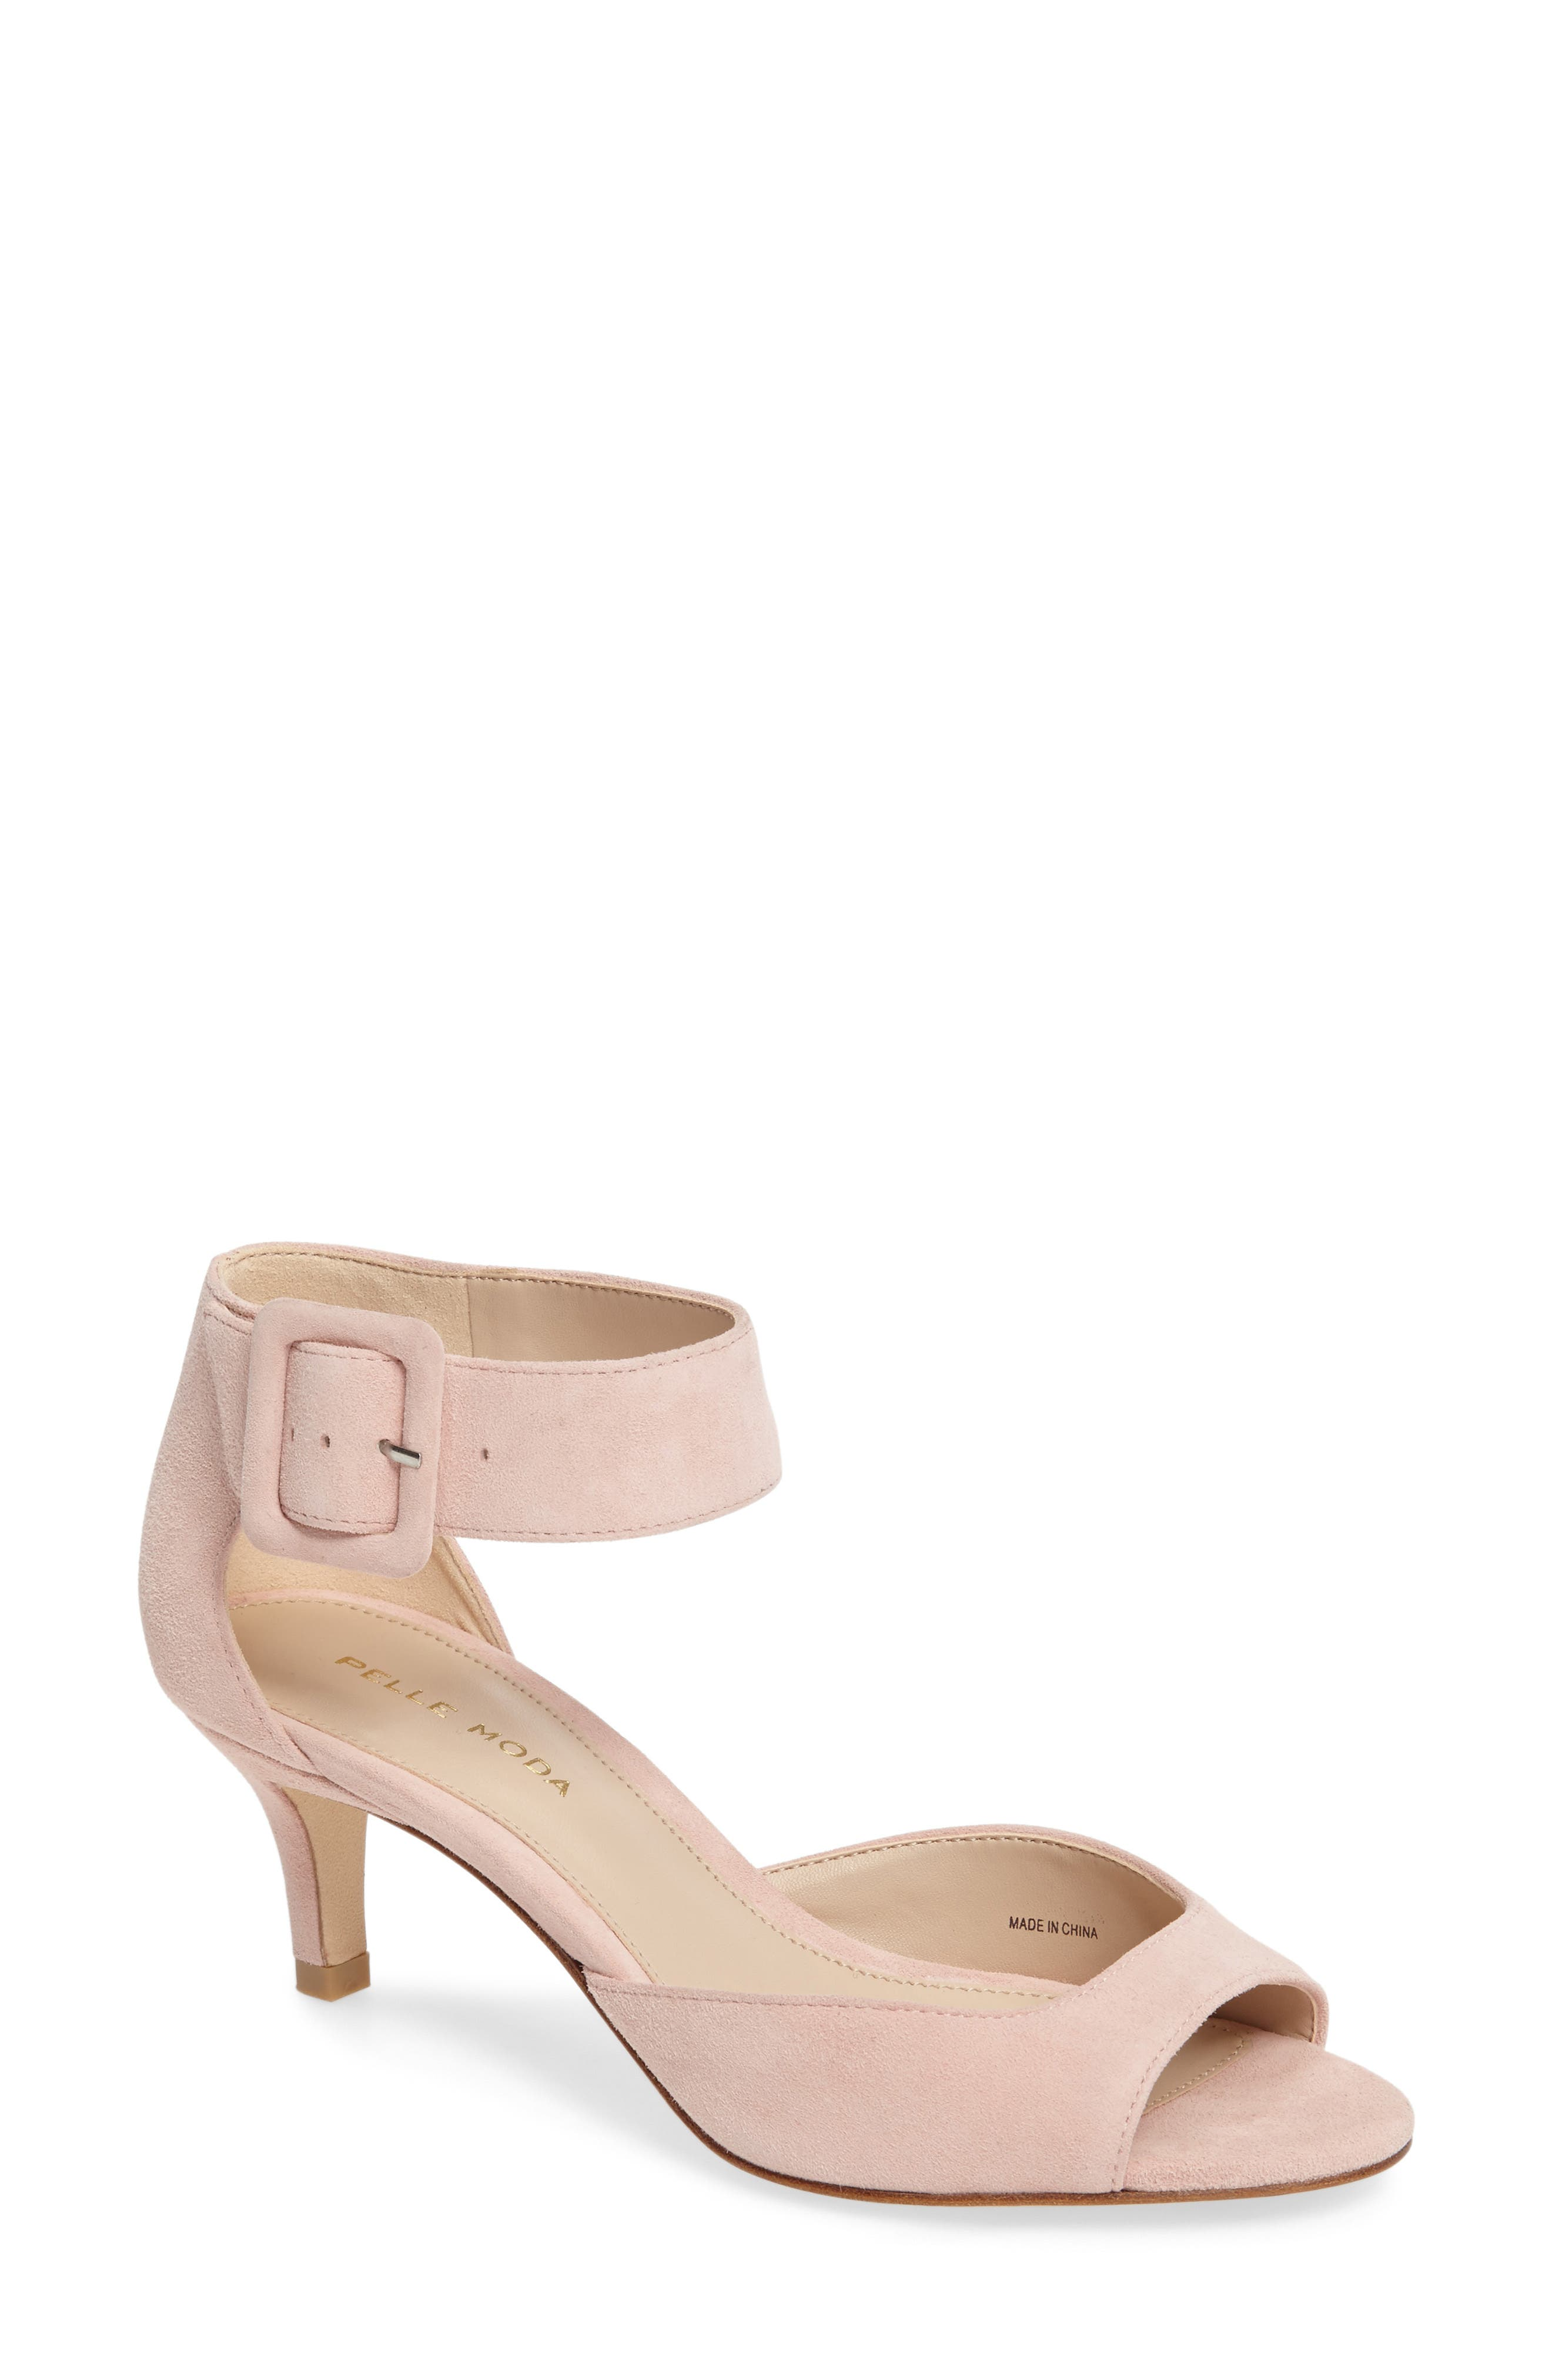 'Berlin' Ankle Strap Sandal,                             Main thumbnail 1, color,                             Pale Pink Leather